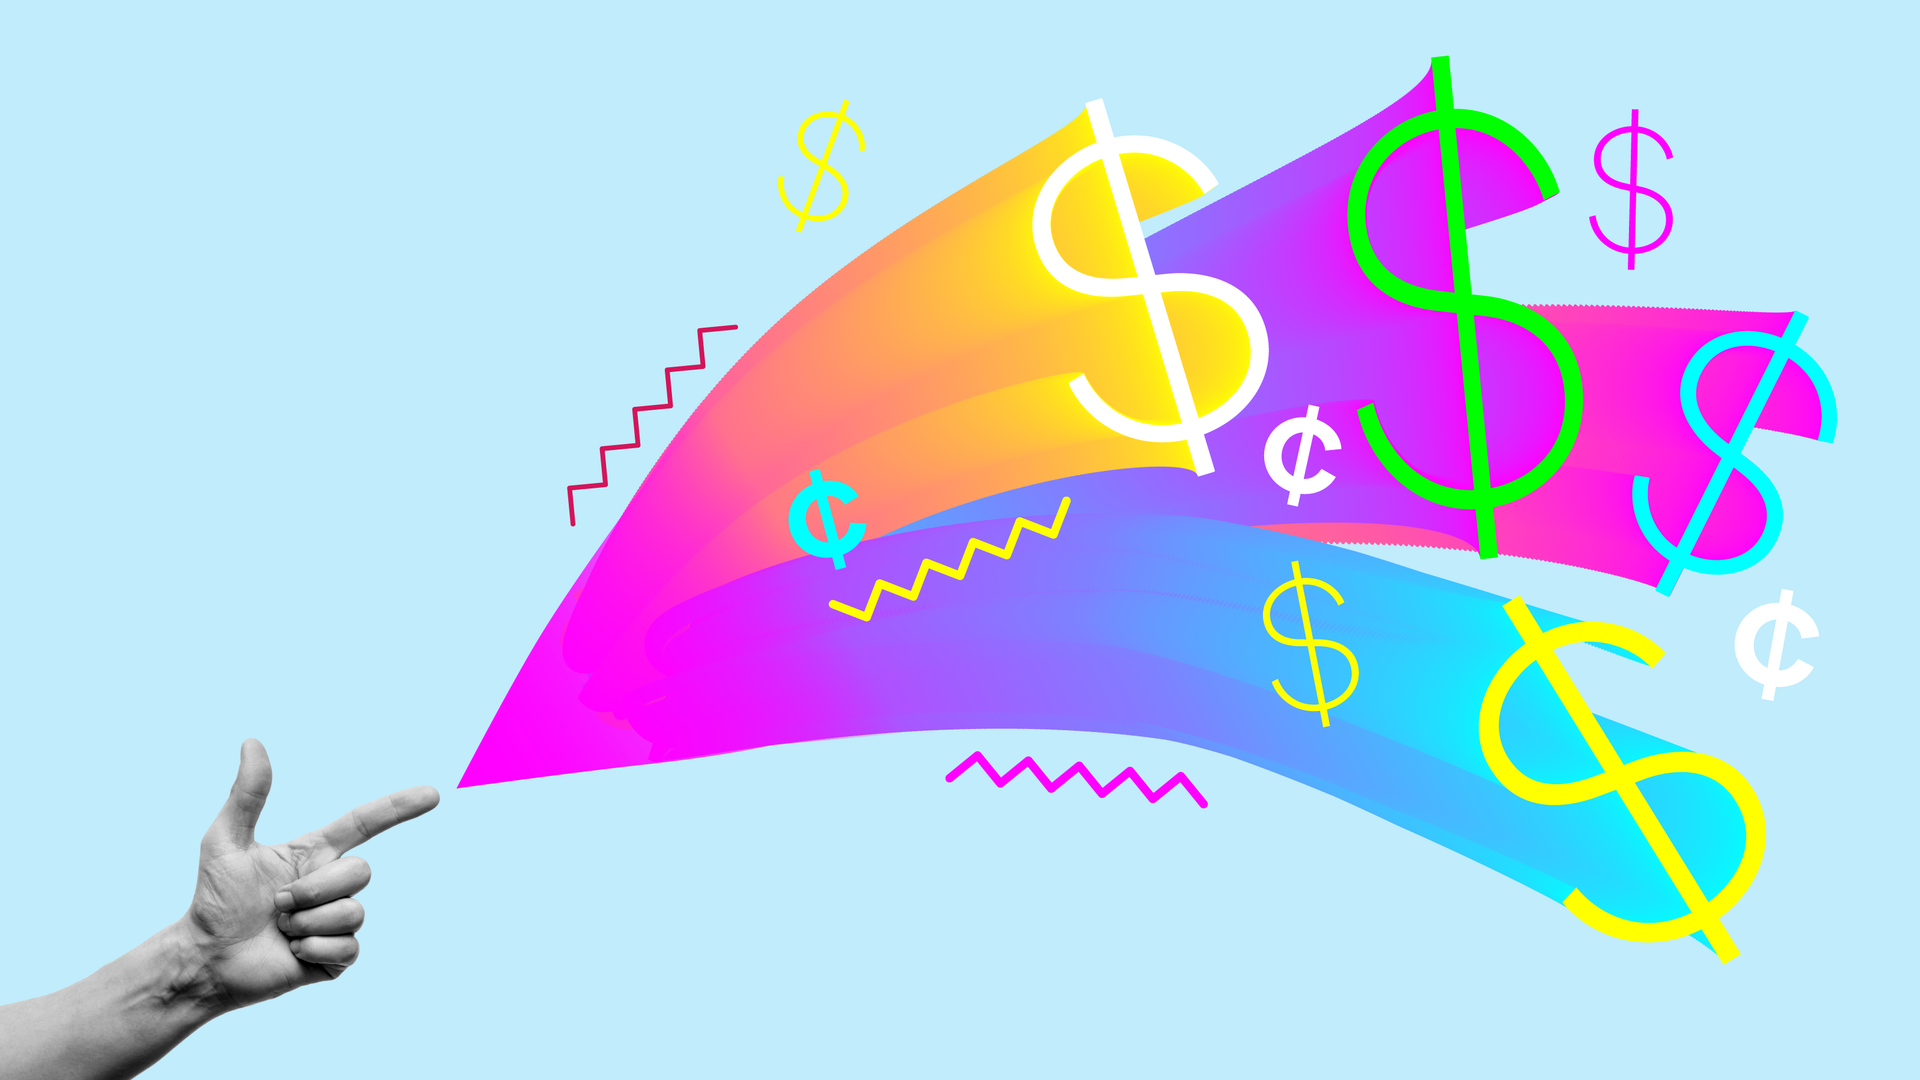 Illustration of money signs shooting from a hand to illustrate company funding.